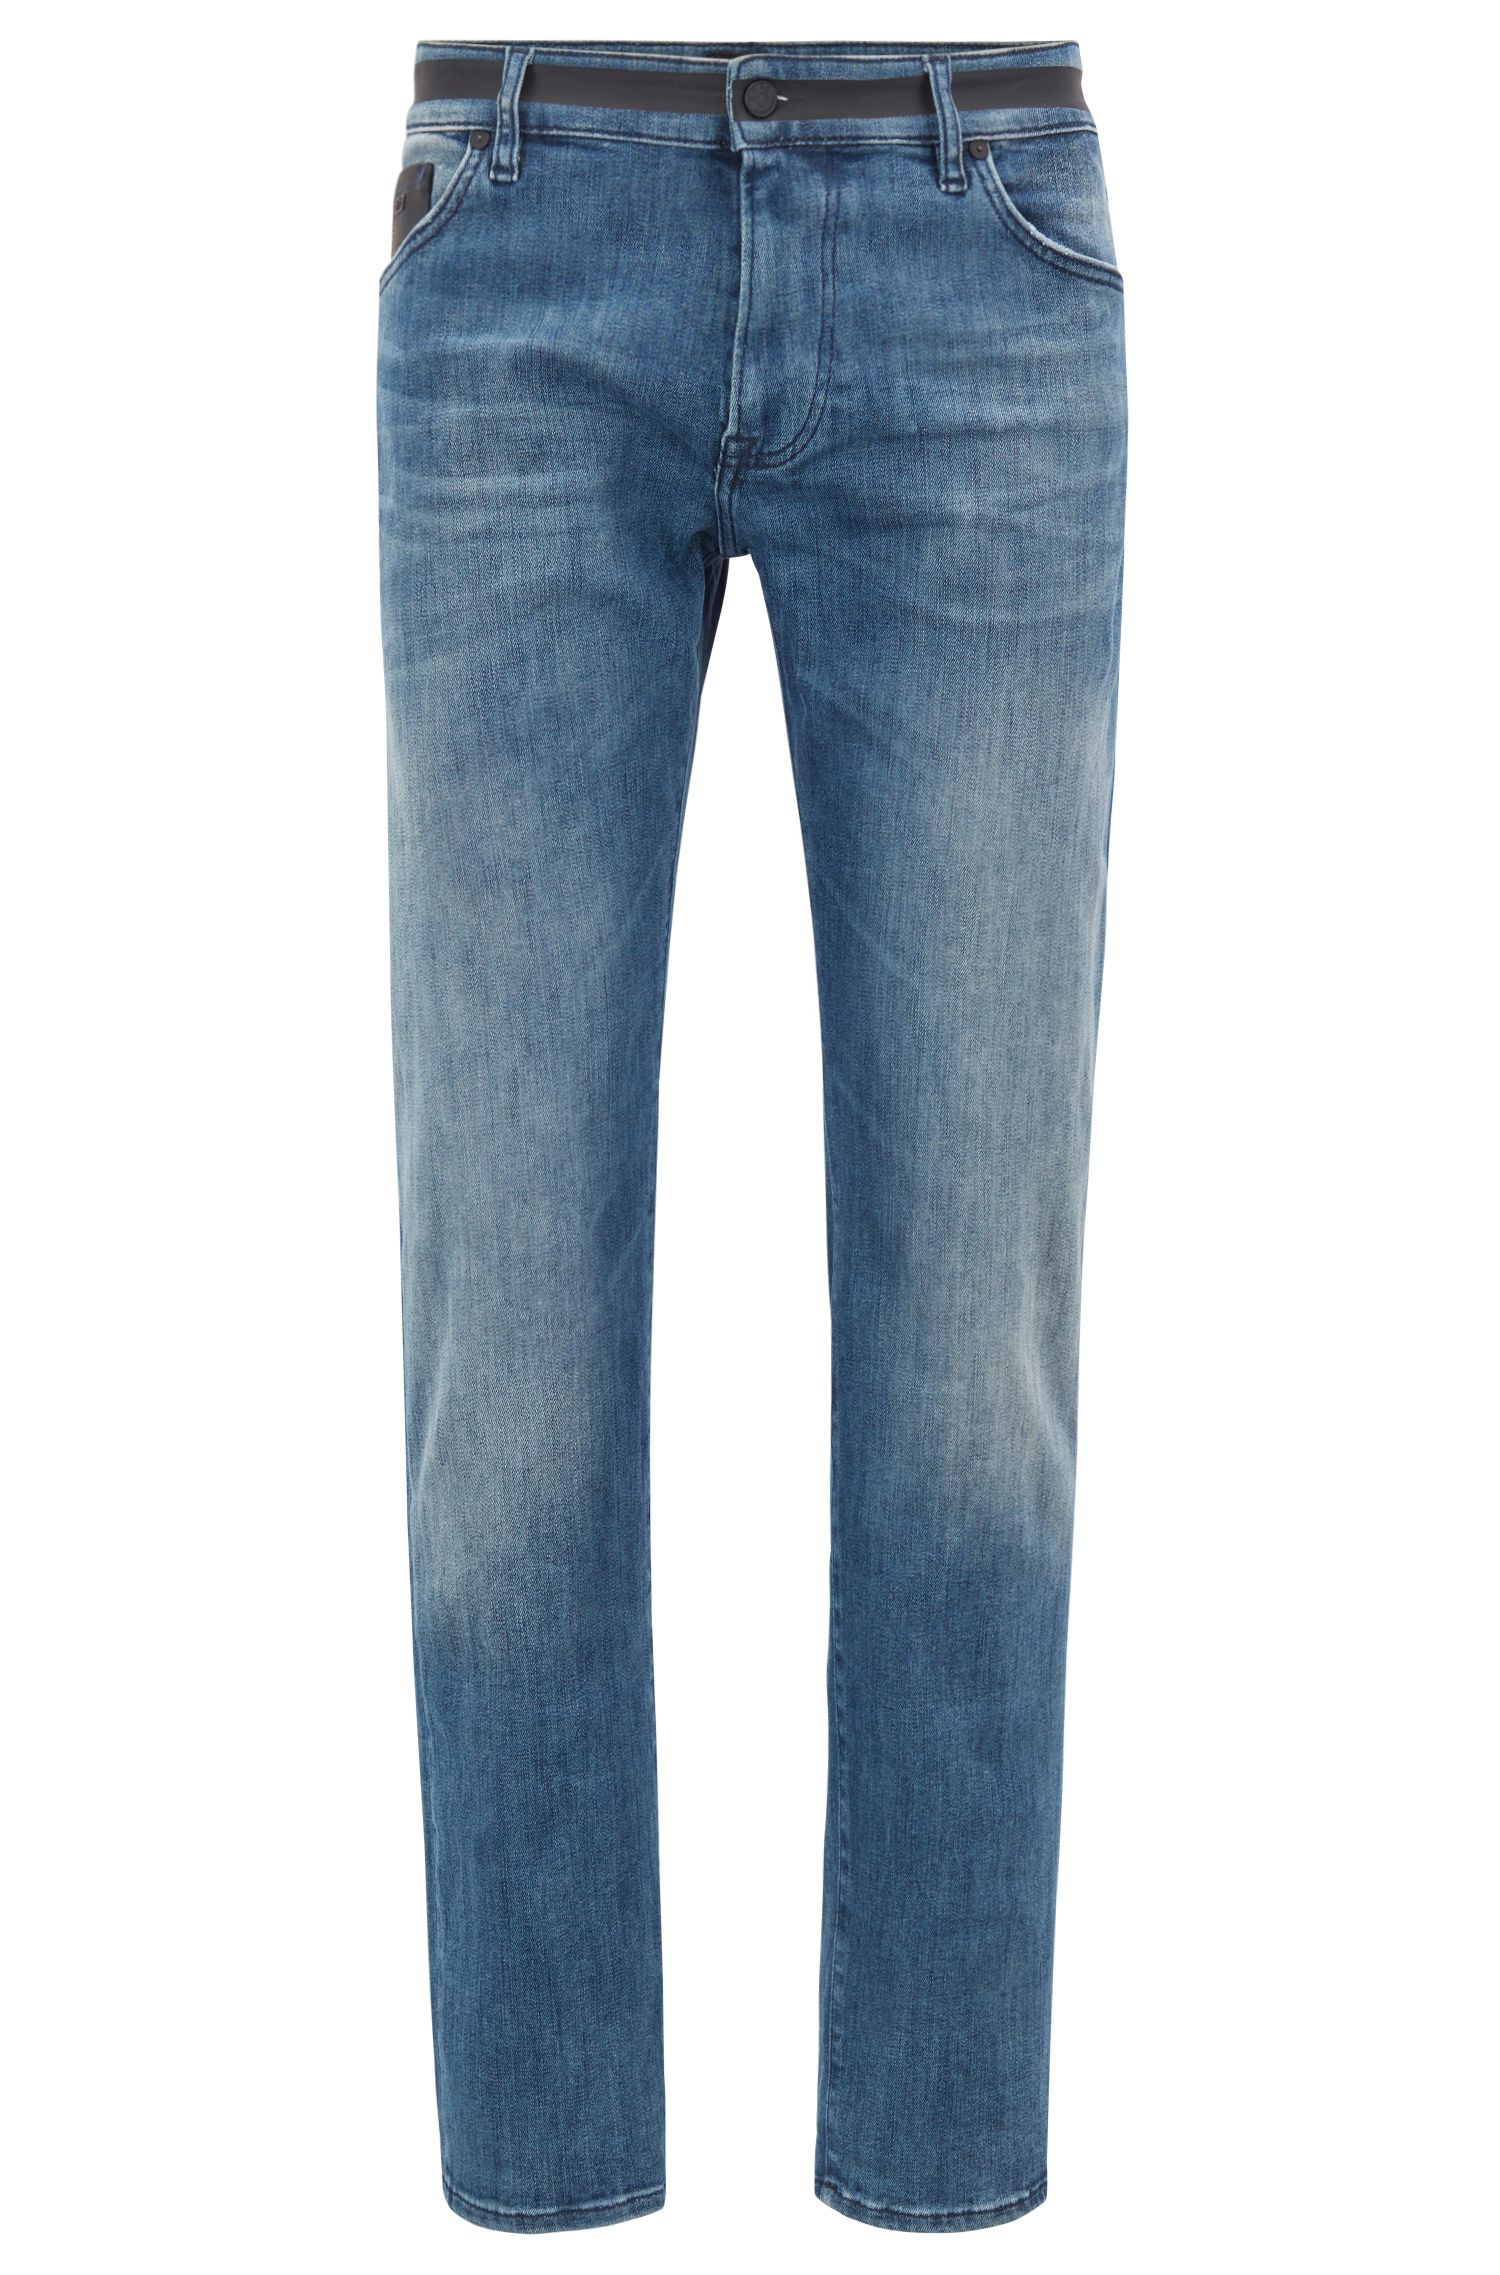 Regular-Fit Jeans aus Stretch-Denim mit schwarzen Details, Blau